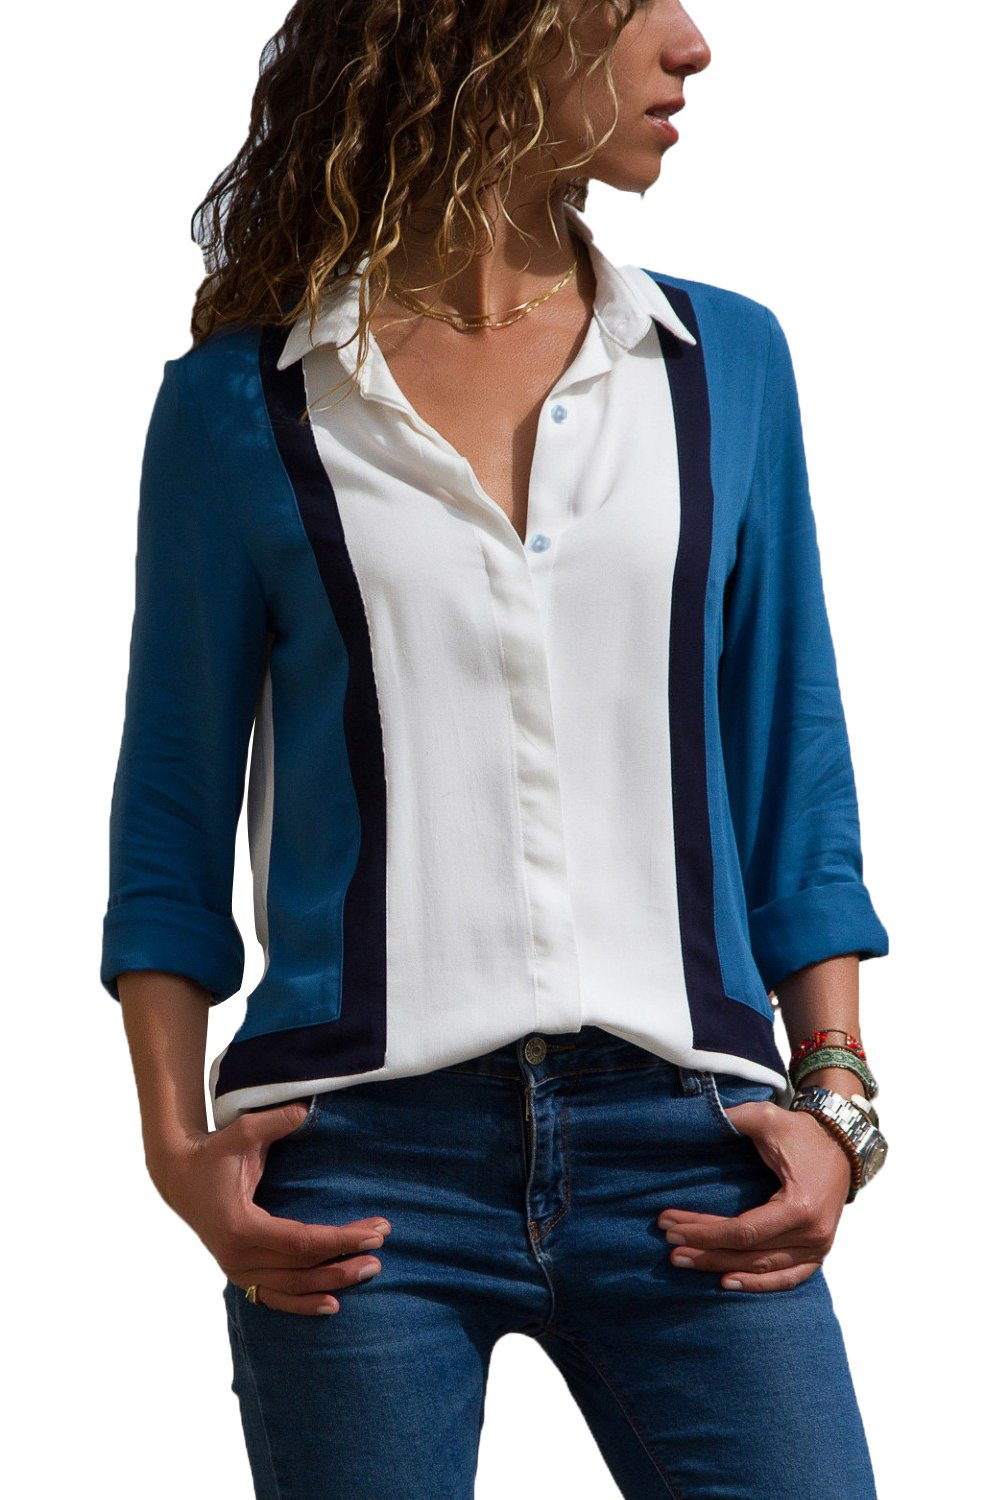 White long-sleeve shirt in blue Size M